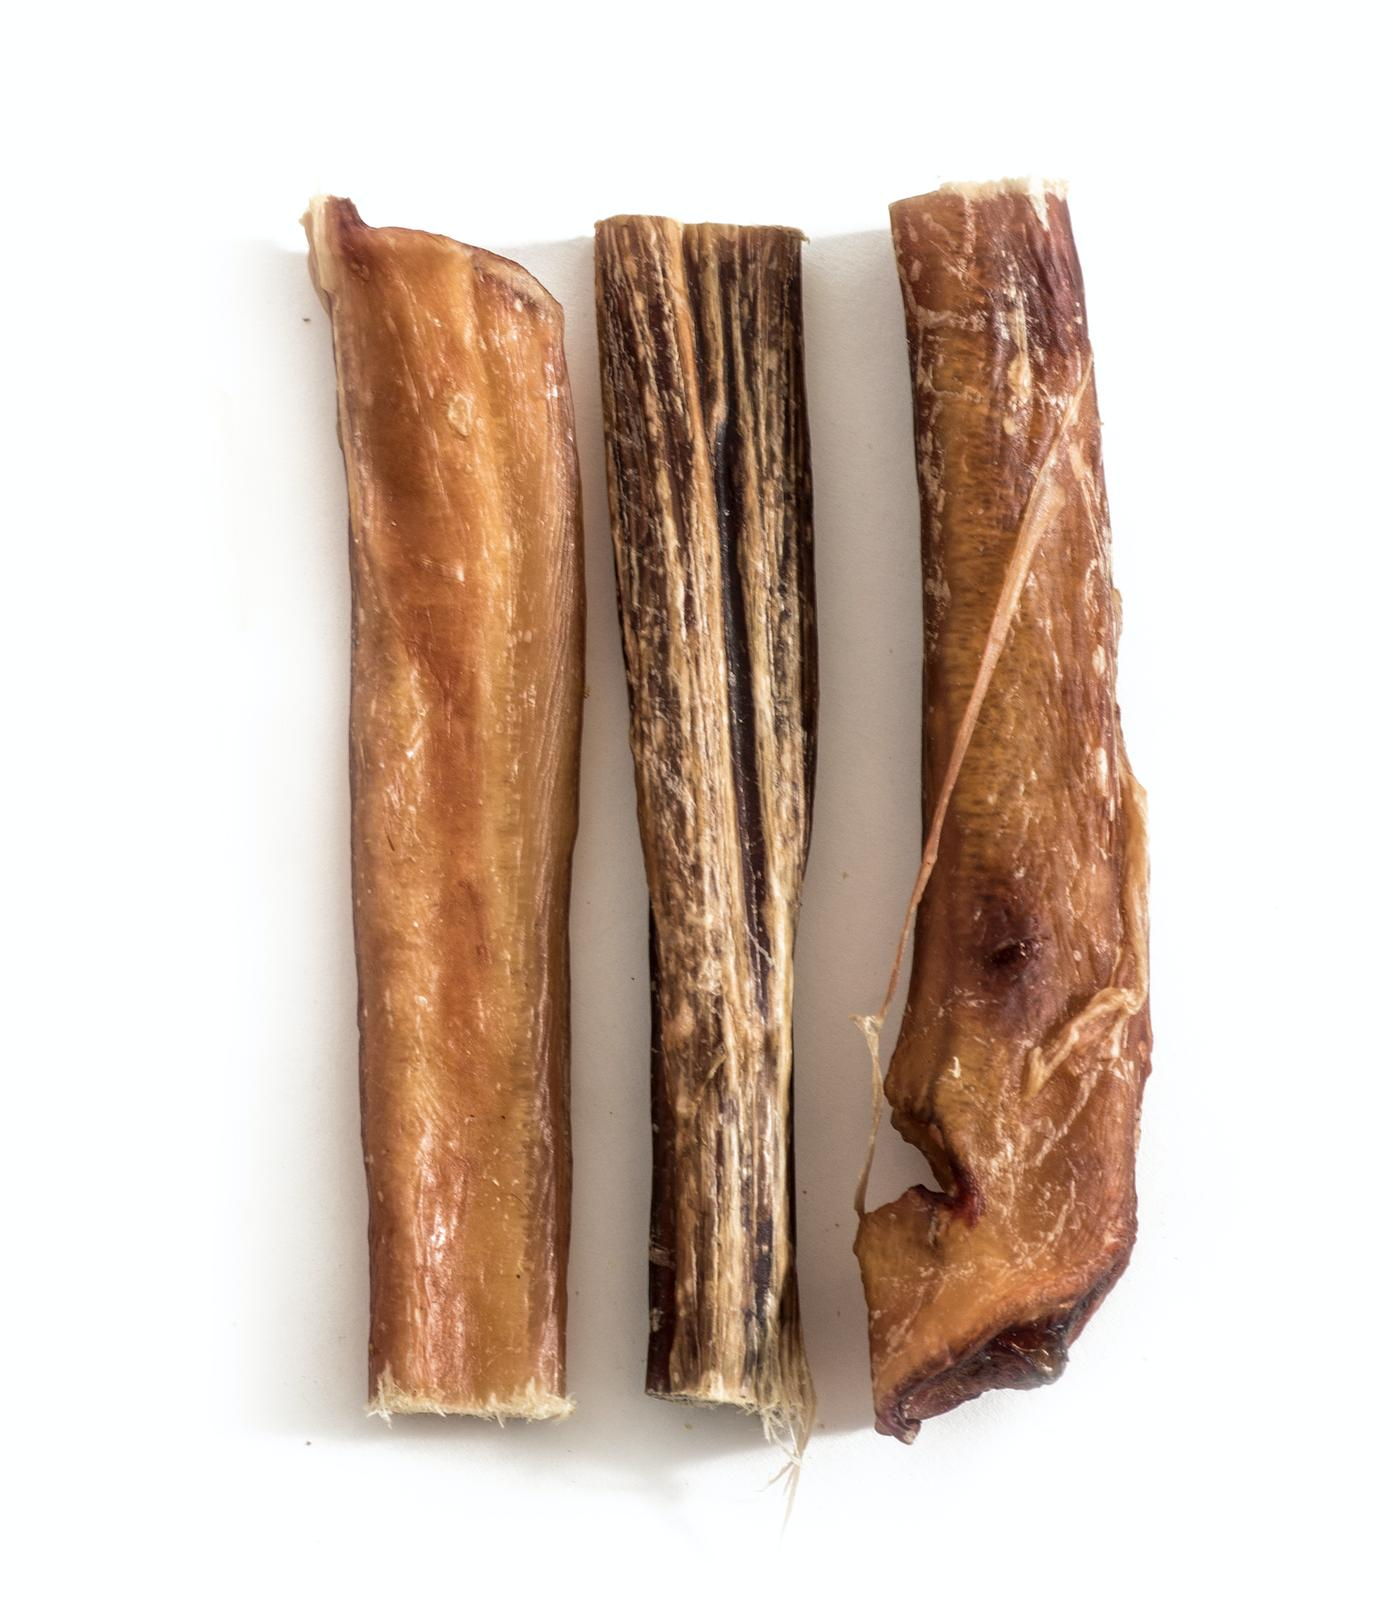 "6"" Thick Sticks 6 pcs Natural Dog Treats USDA Approved"